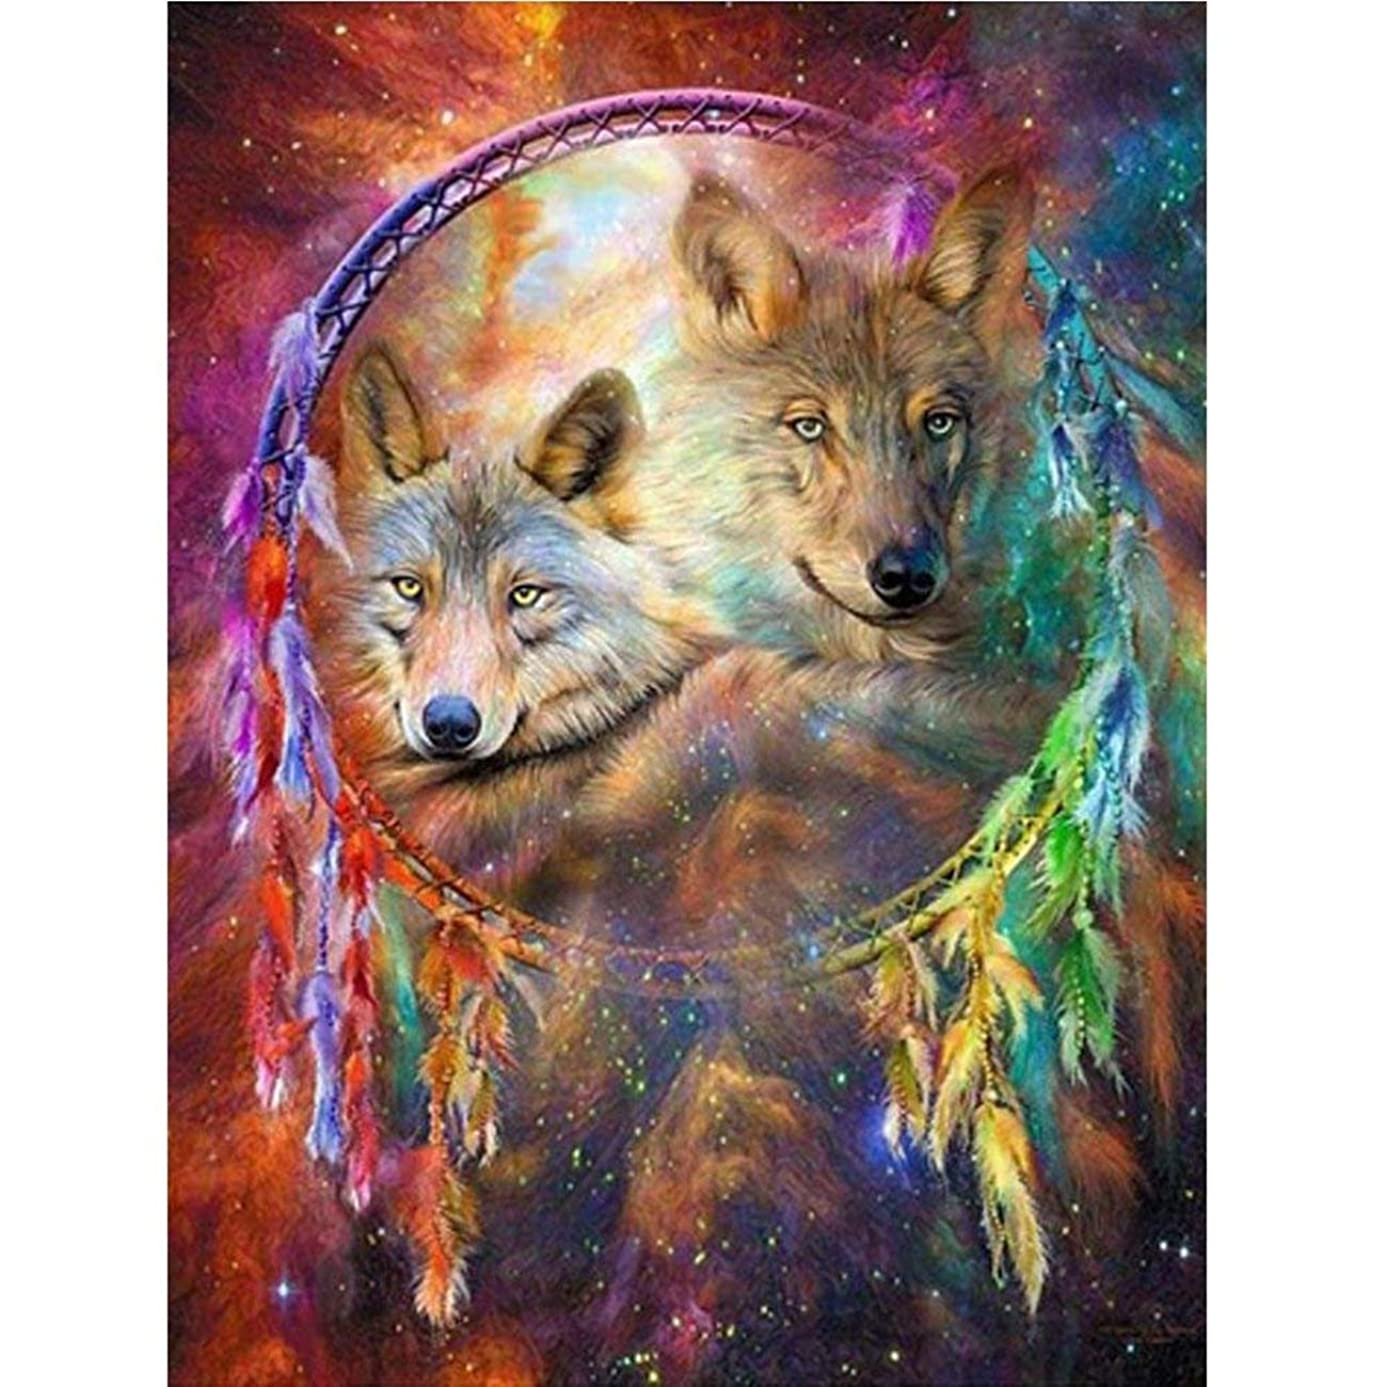 DIY Diamond Painting Kits for Adults, Dreamcatcher Wolves Full Drill Rhinestone Embroidery Cross Stitch Supply Arts Craft Canvas Wall Decor 11.8x15.8 inch